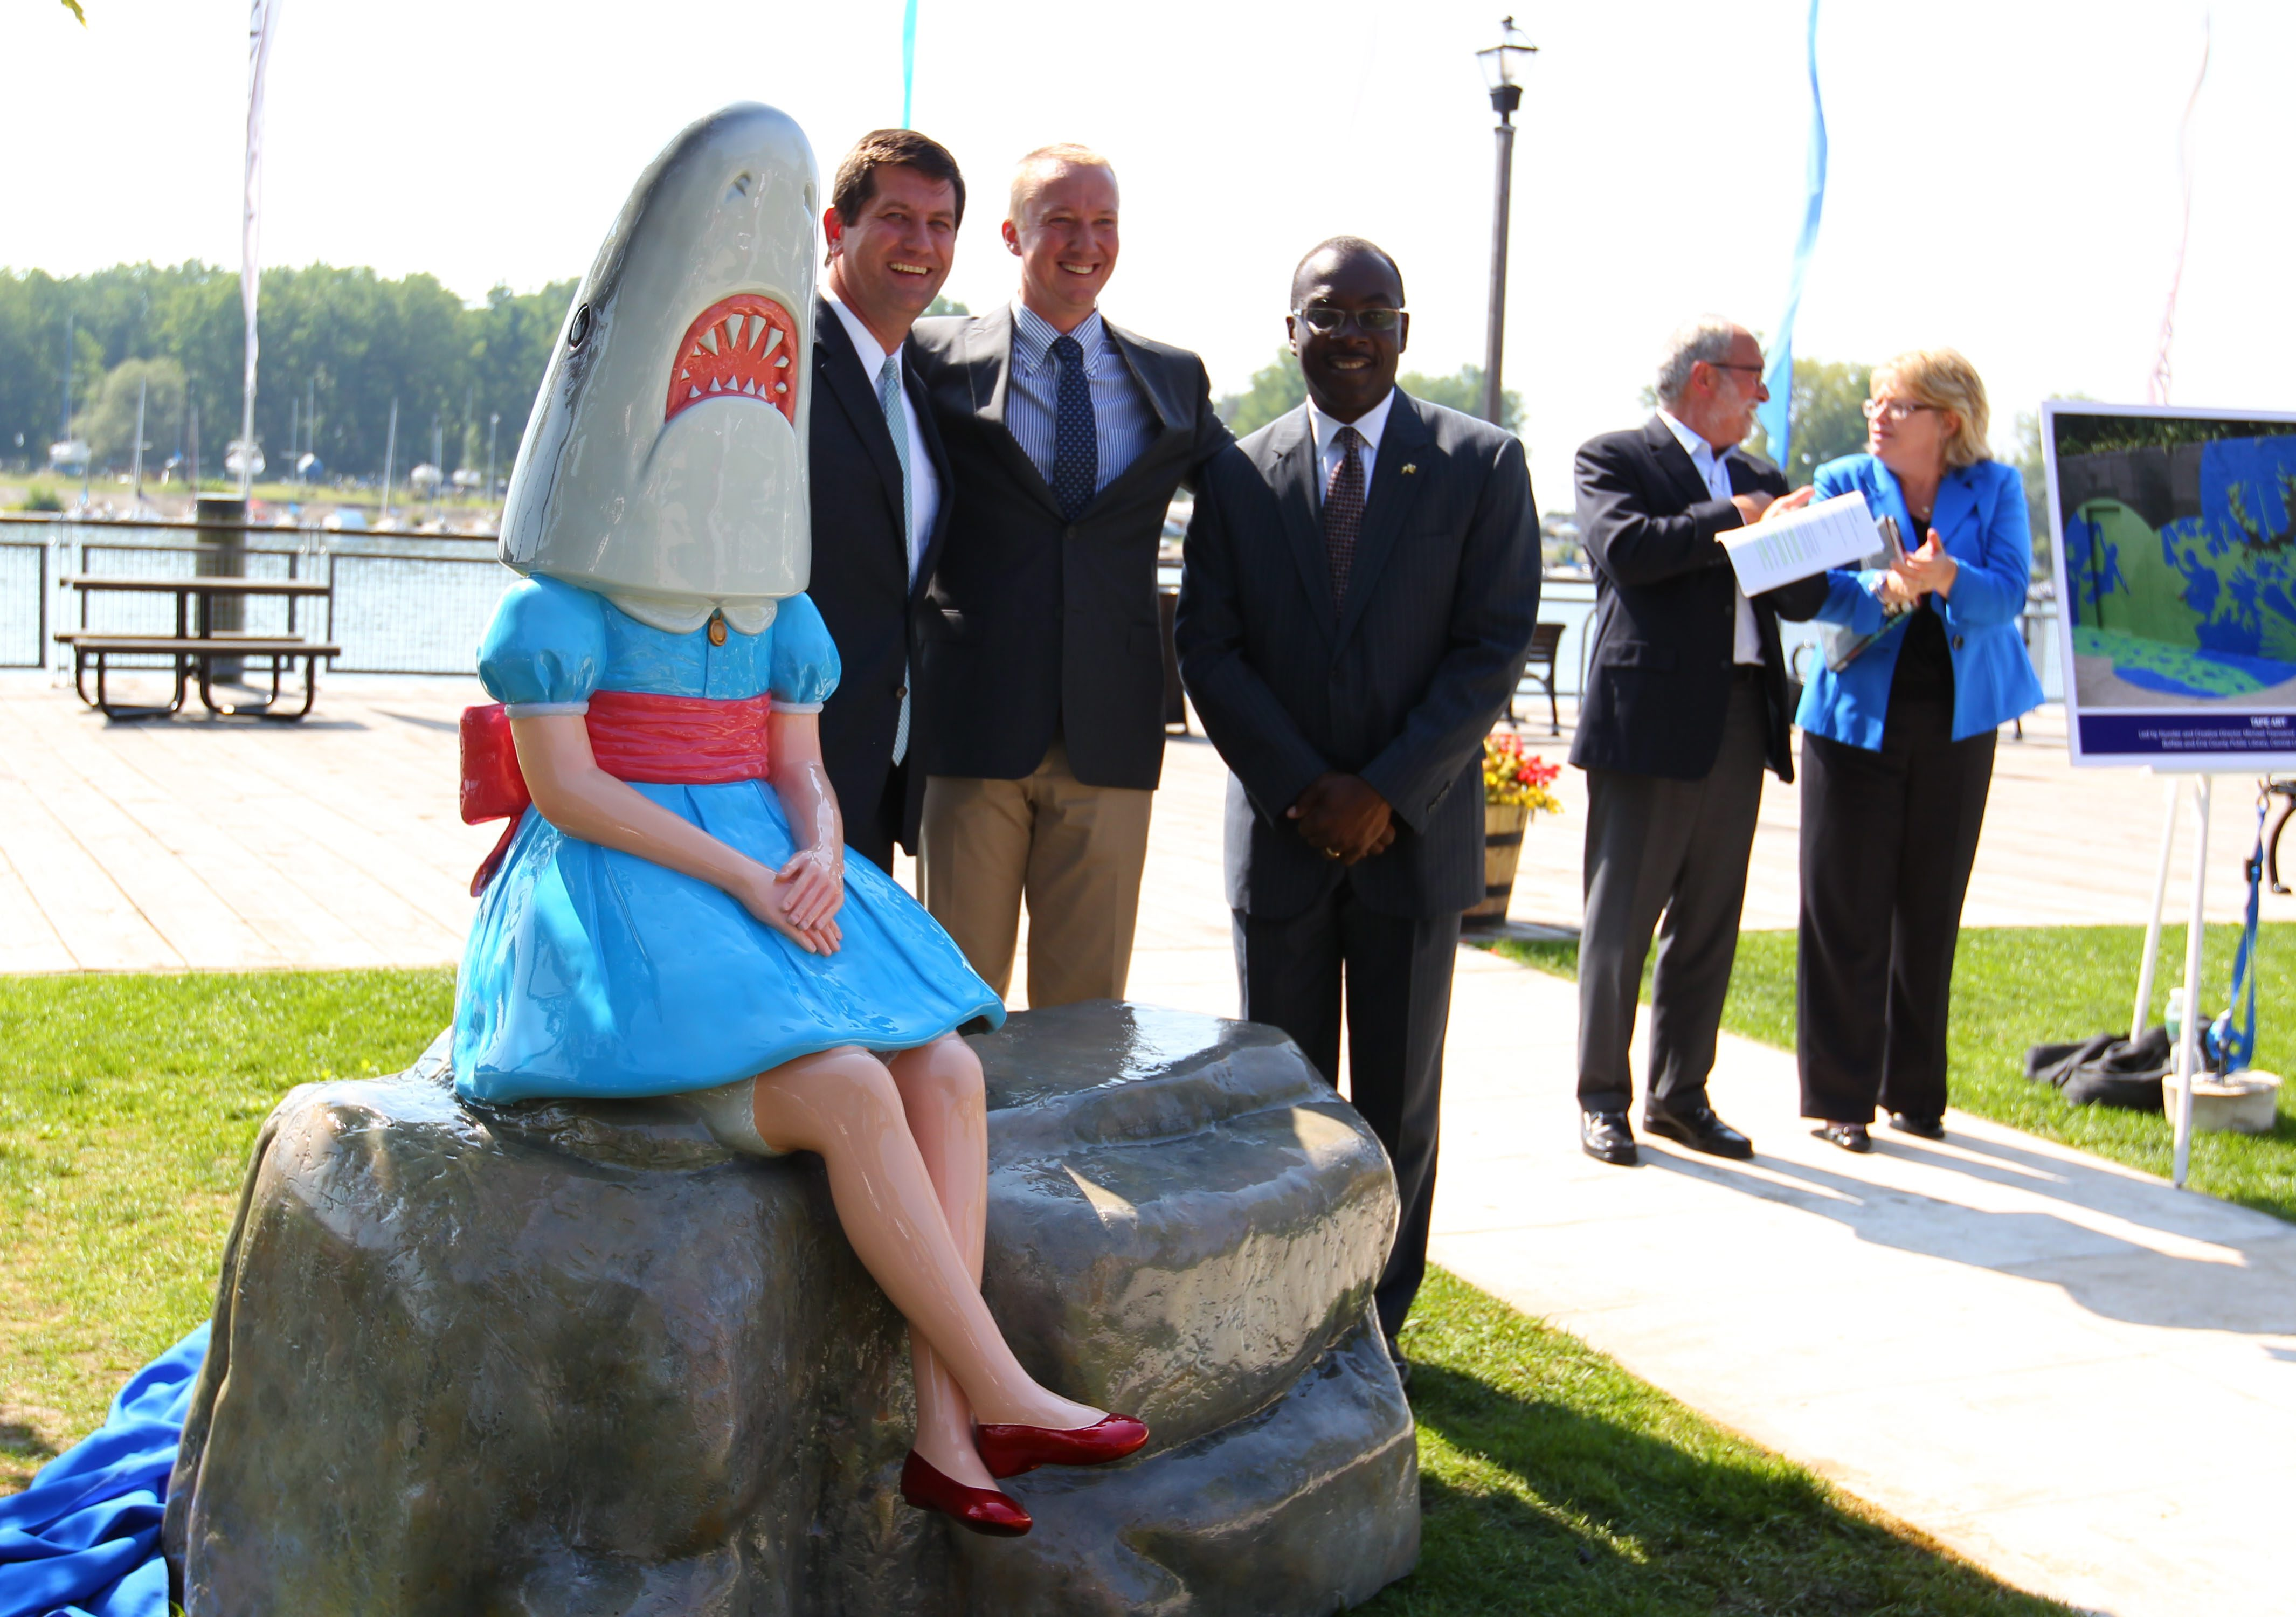 County Executive Mark Poloncarz, left, Albright Knox Executive Dir. Dr. Janne Siren, center, and Mayor Byron Brown, right, unviel a new sculpture during a ceremony at Canalside in Buffalo Tuesday, August 26, 2014.   (Mark Mulville/Buffalo News)